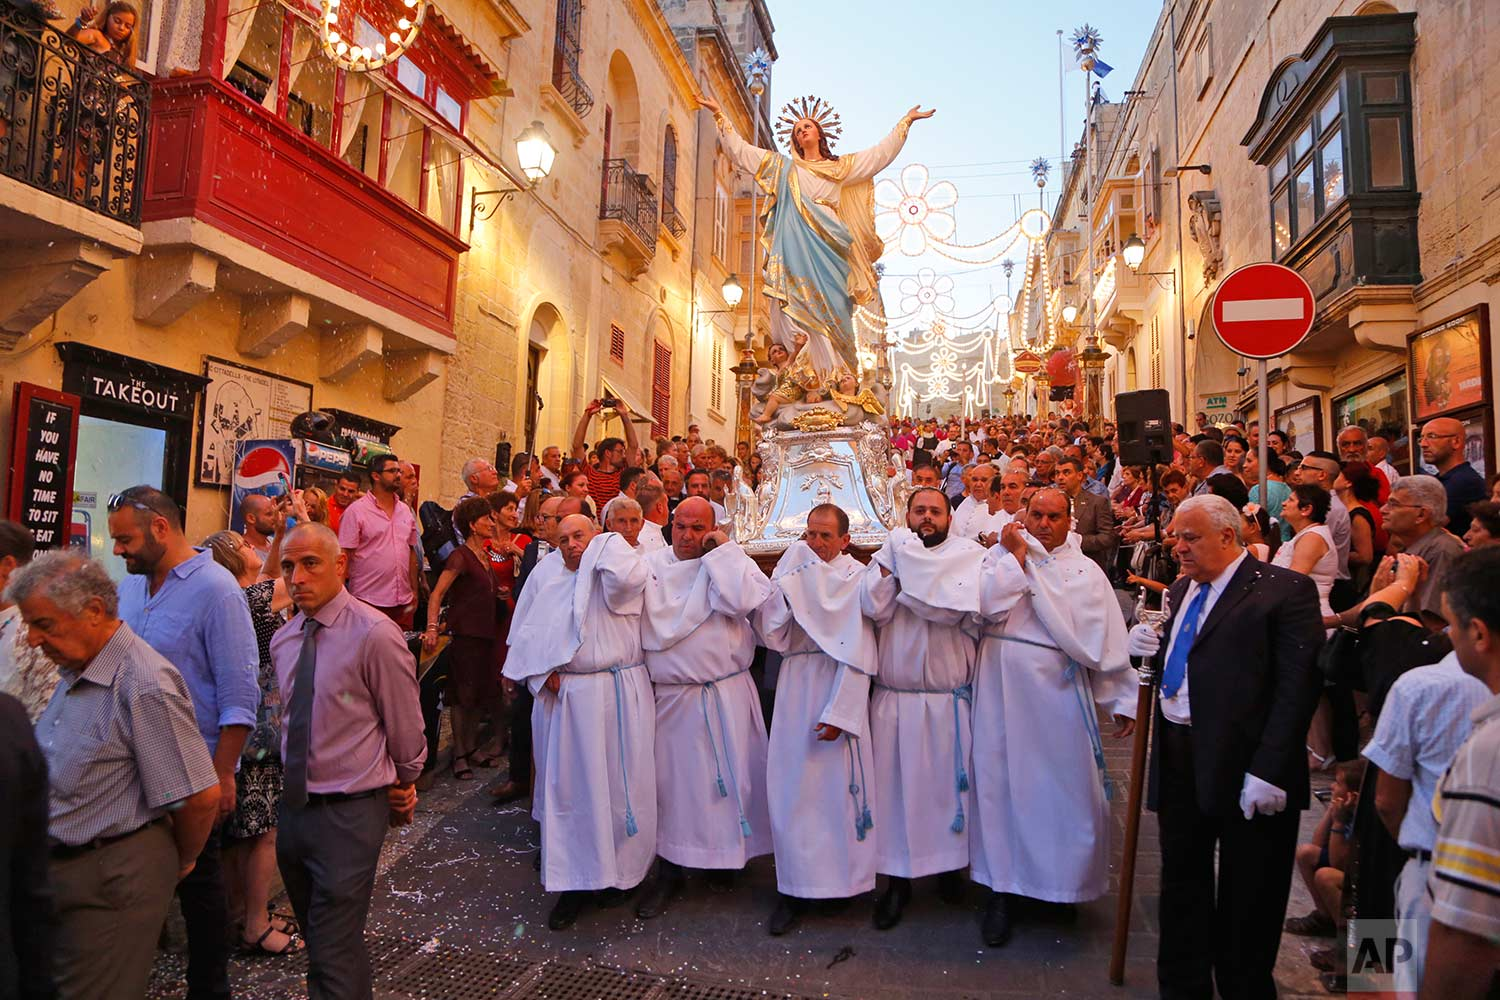 In this photo taken on Wednesday, Aug. 15, 2018, devotees carry a statue of the Virgin Mary through the streets of Rabat on the island of Gozo in the Maltese archipelago, during the feast day of the Assumption of Mary. (AP Photo/Niranjan Shrestha)